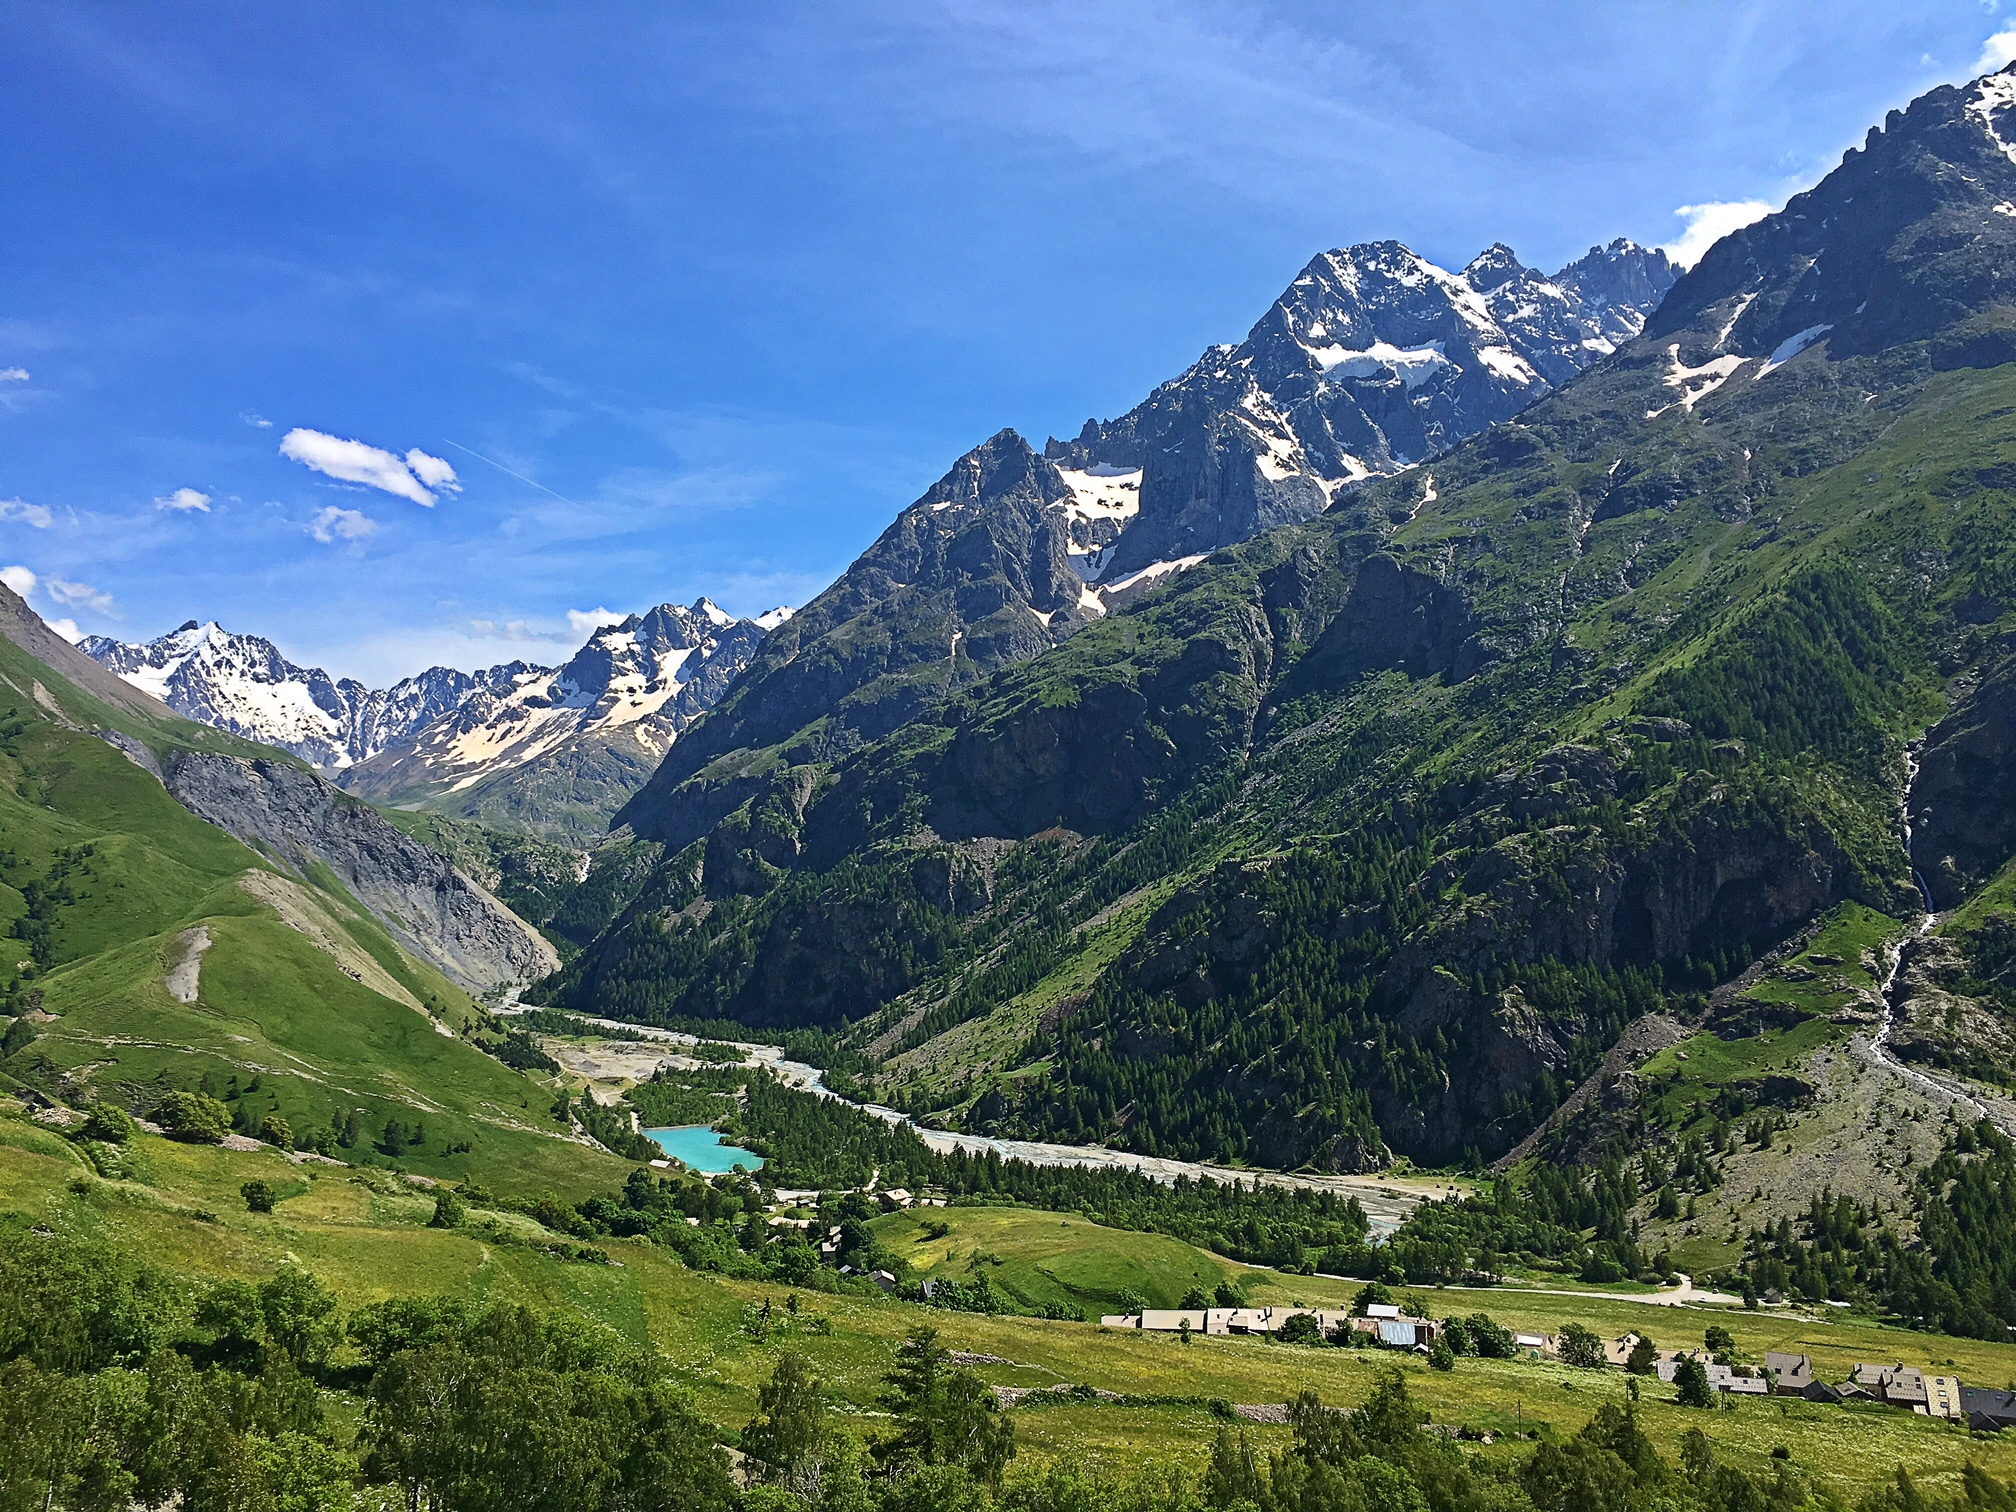 View from Descent of Col du Lautaret - Had to hit the breaks and pop of to capture this one